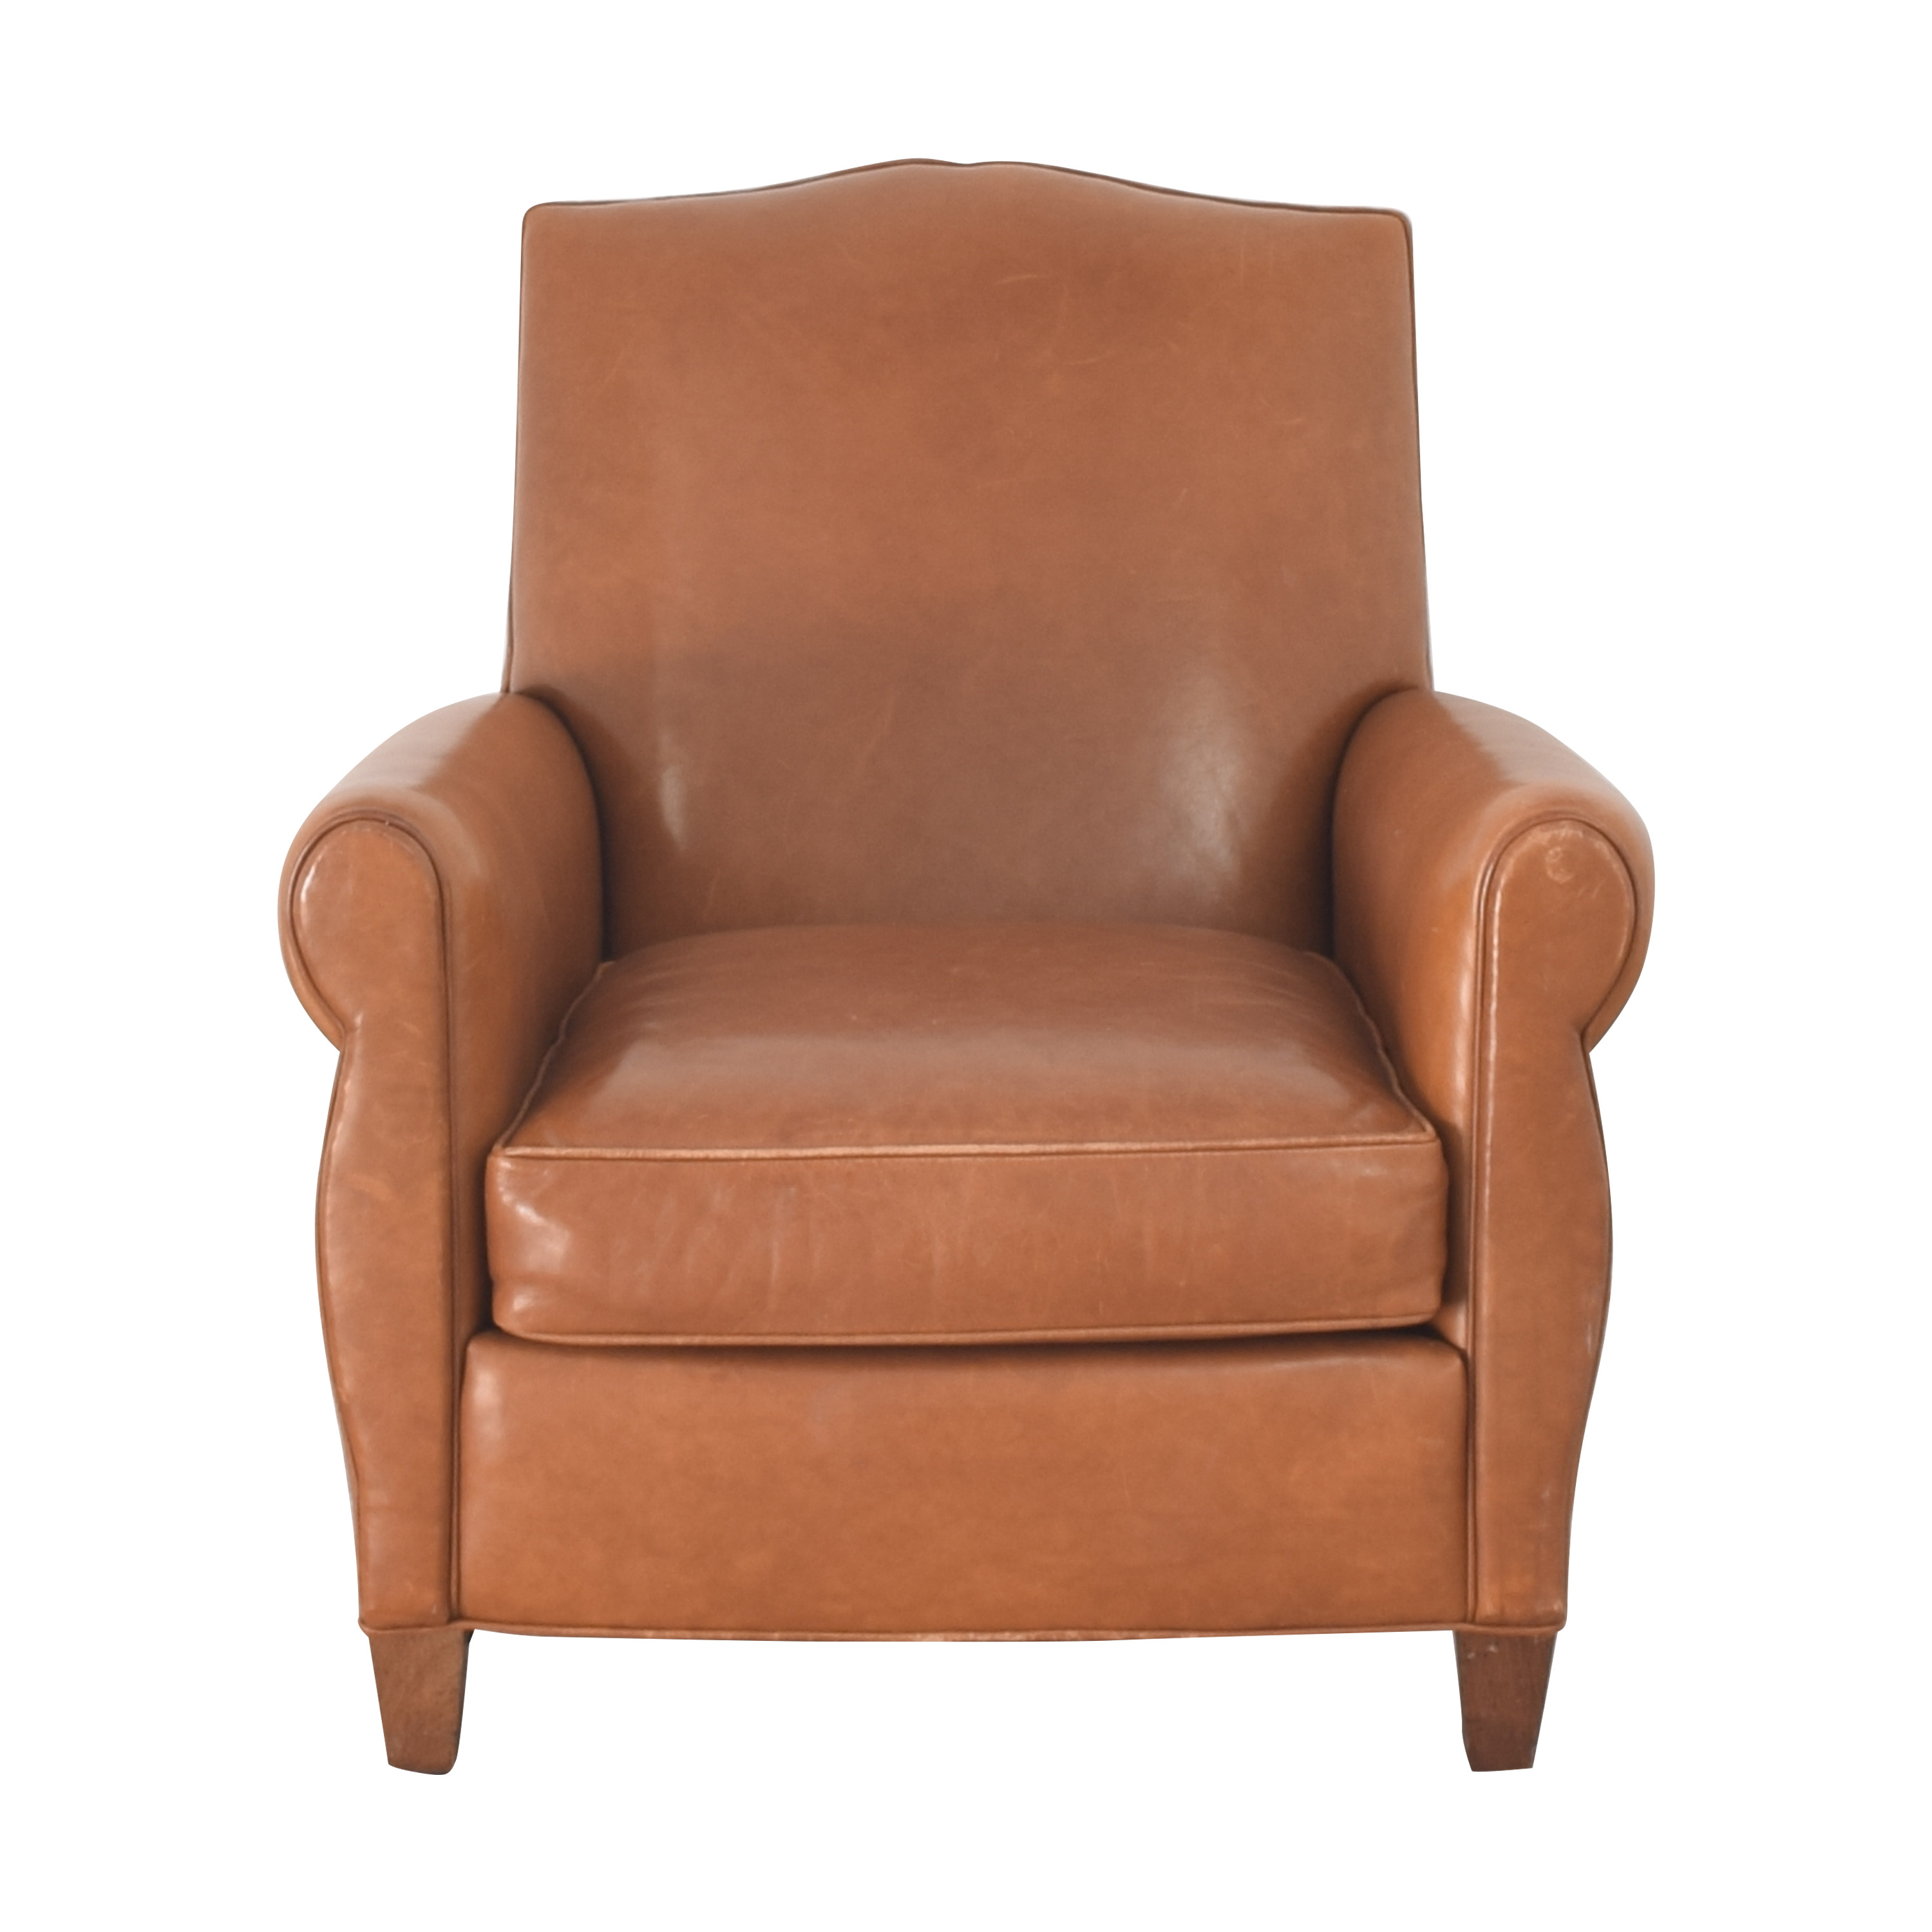 Lee Industries Lee Industries Accent Chair used